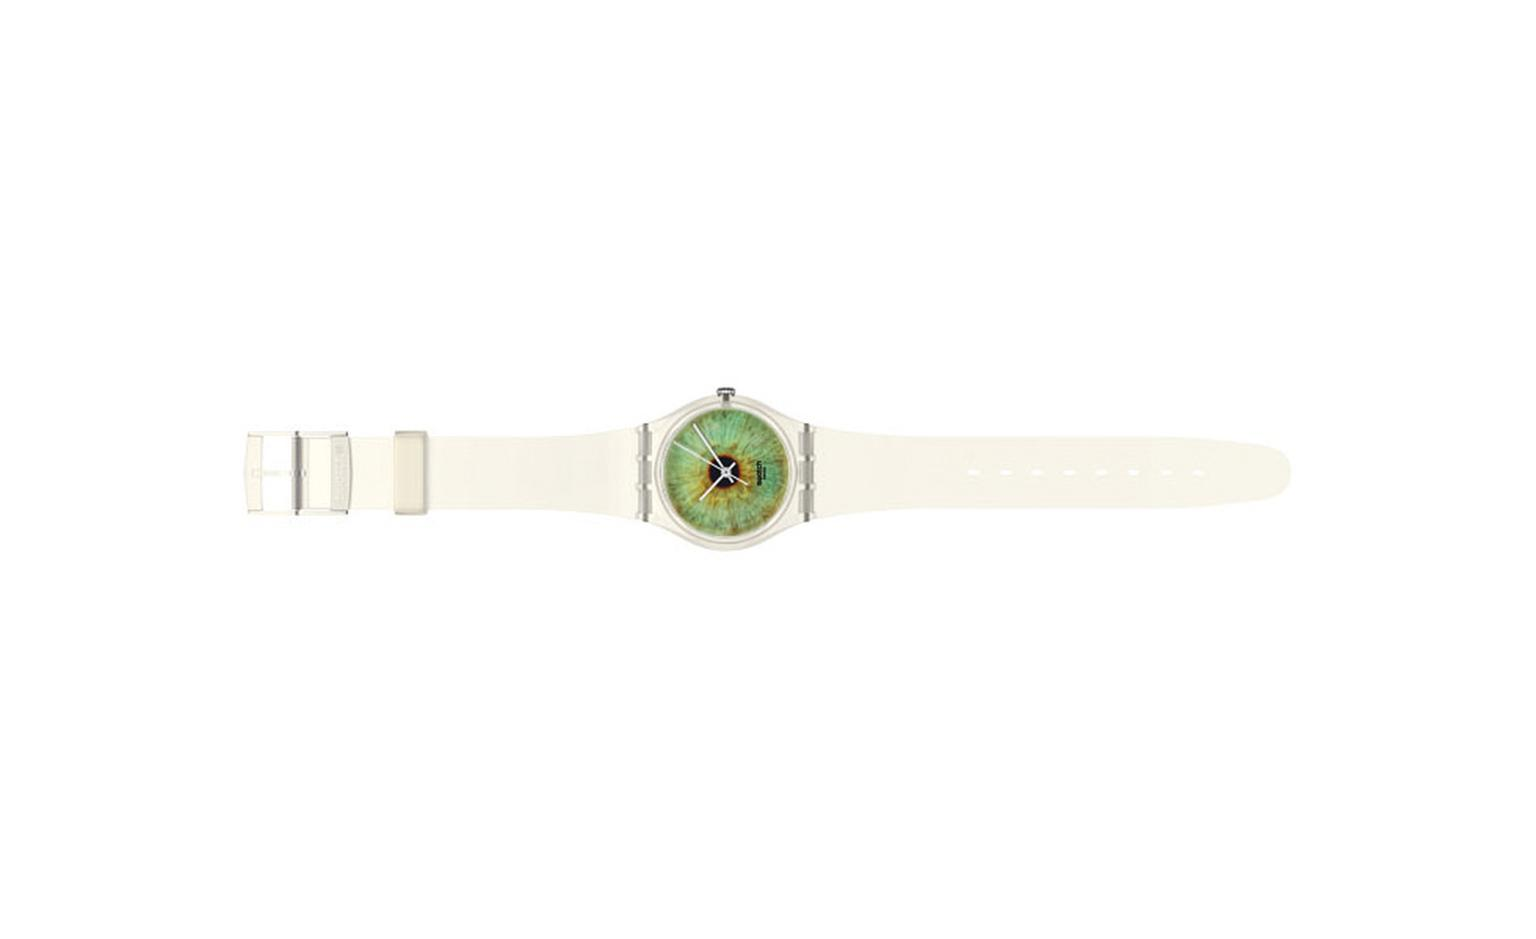 The Swatch Greenscape Rankin watch that sells for £38